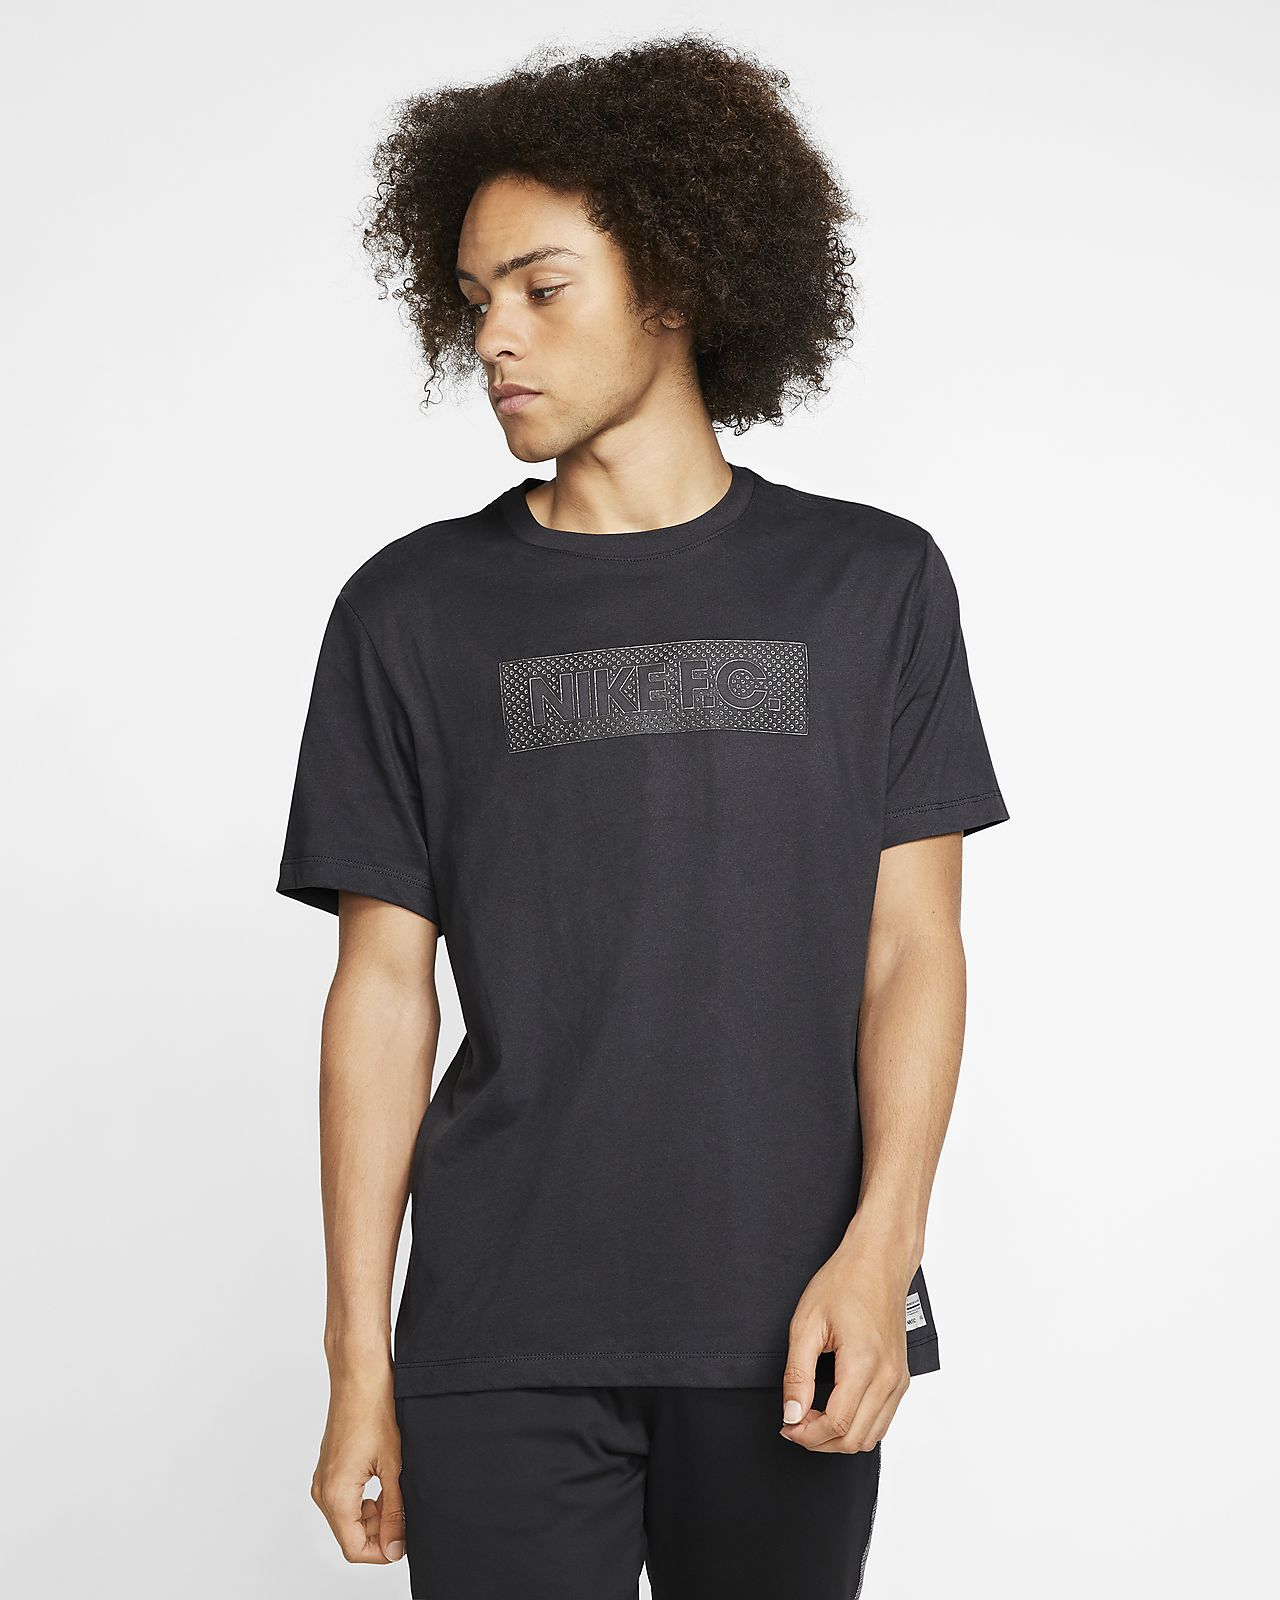 Tee-shirt Nike F.C. pour Homme